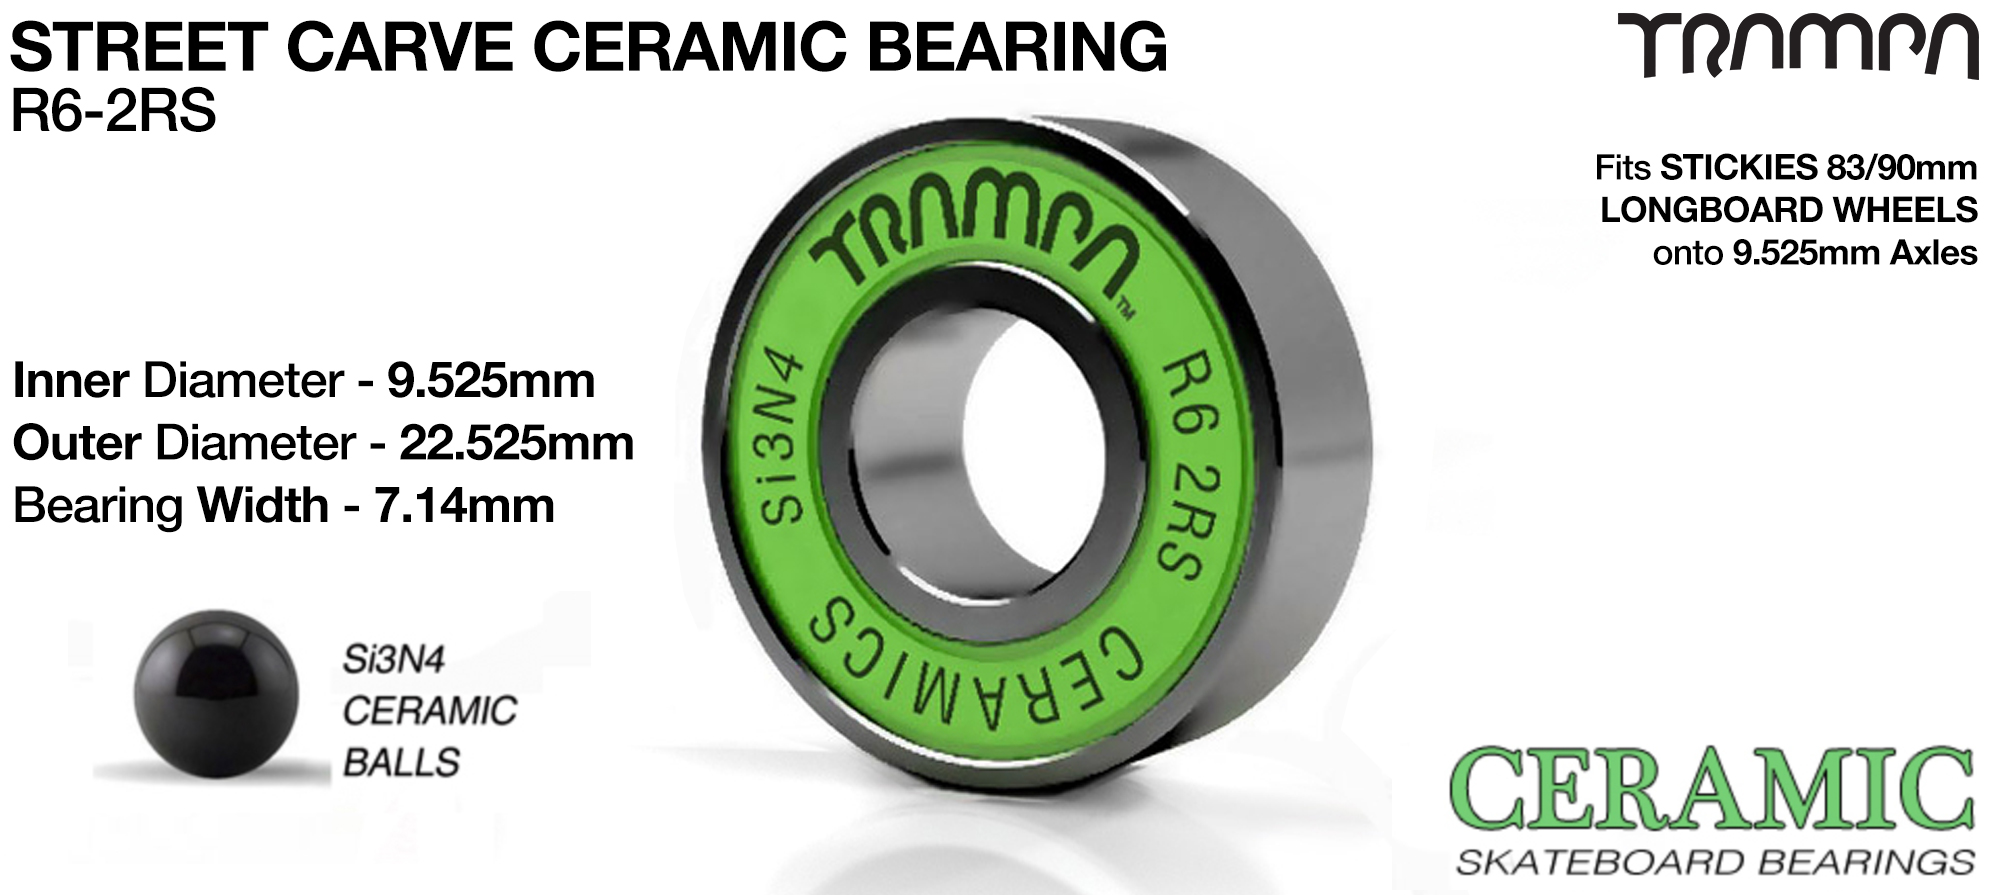 9.525mm Axle Truck to STICKIES wheel Bearings - GREEN CERAMIC (+£40)